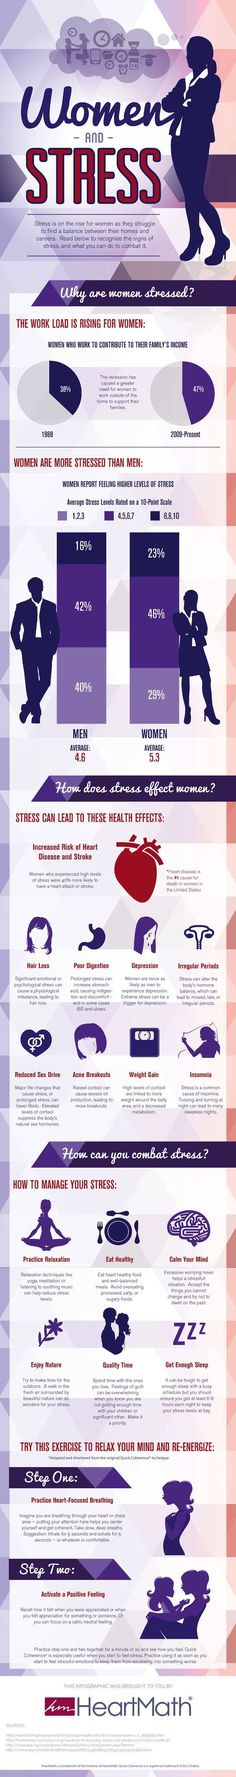 Women and How Stress Effects Them - brendamueller.com